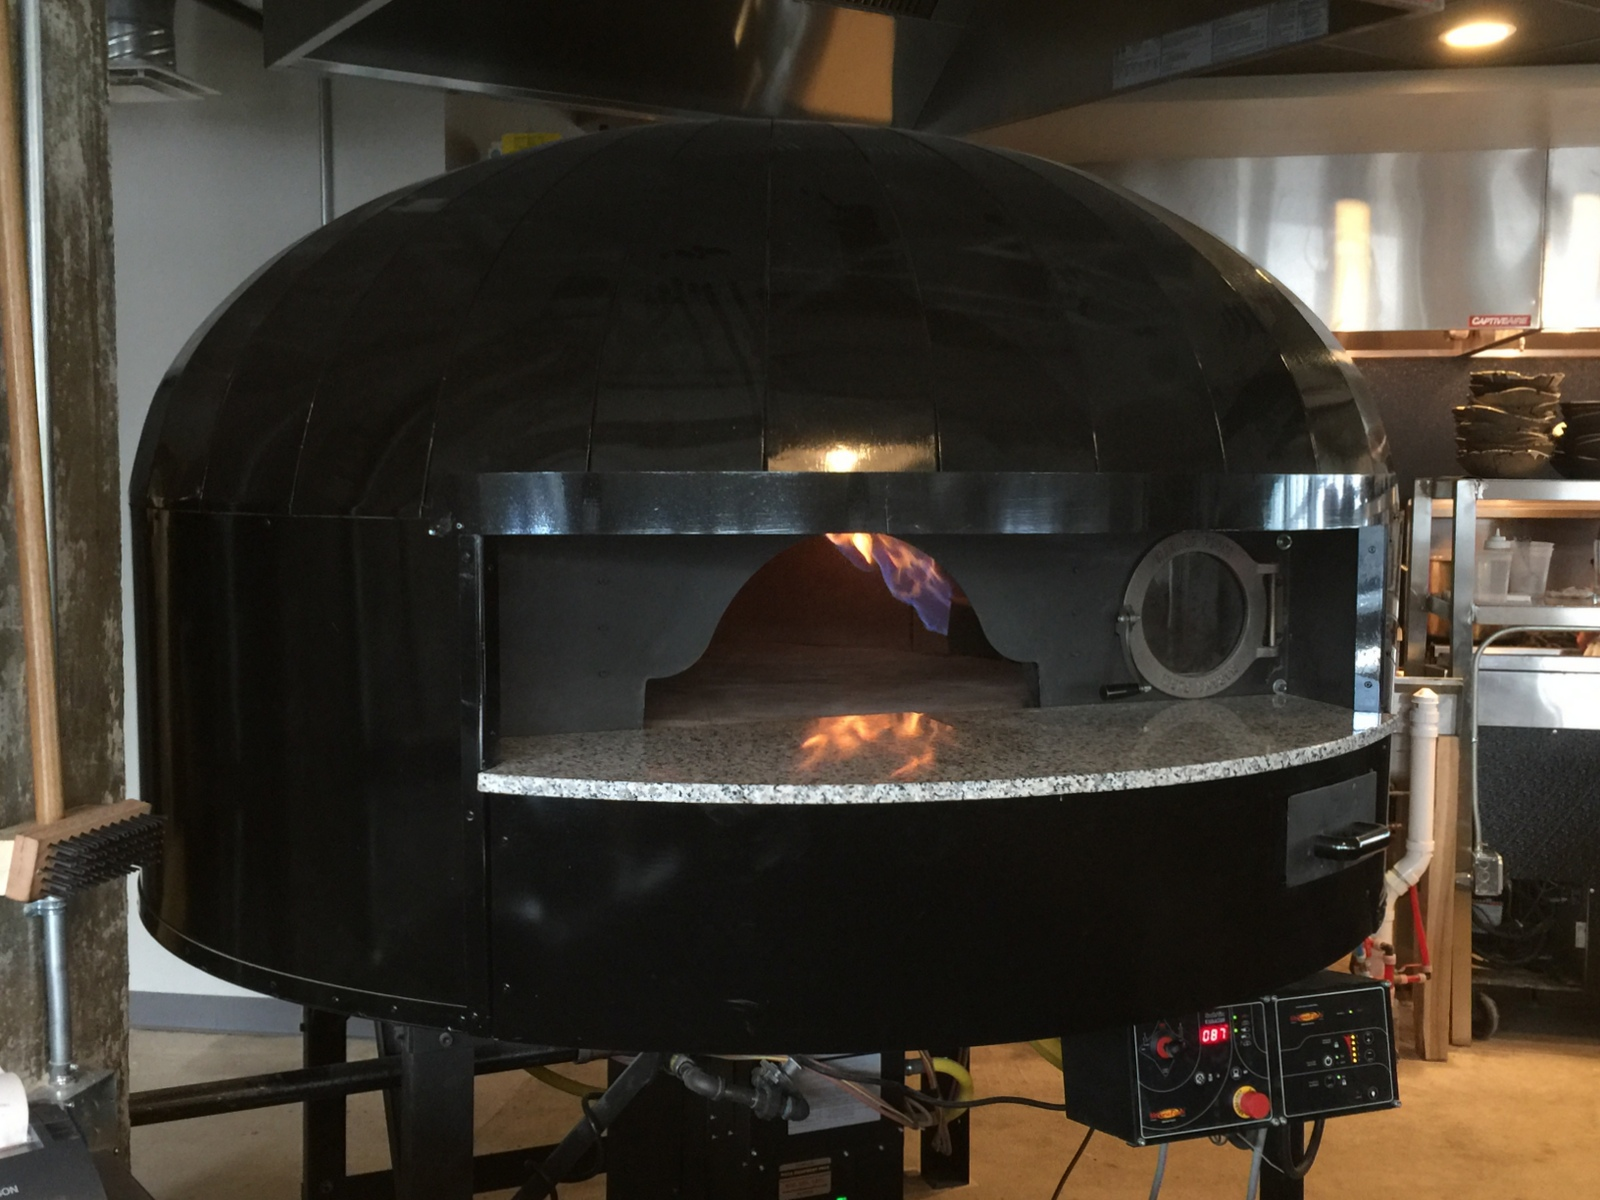 The 8,000-pound rotating-deck pizza oven at Roost. (Andrew Galarneau/Buffalo News)